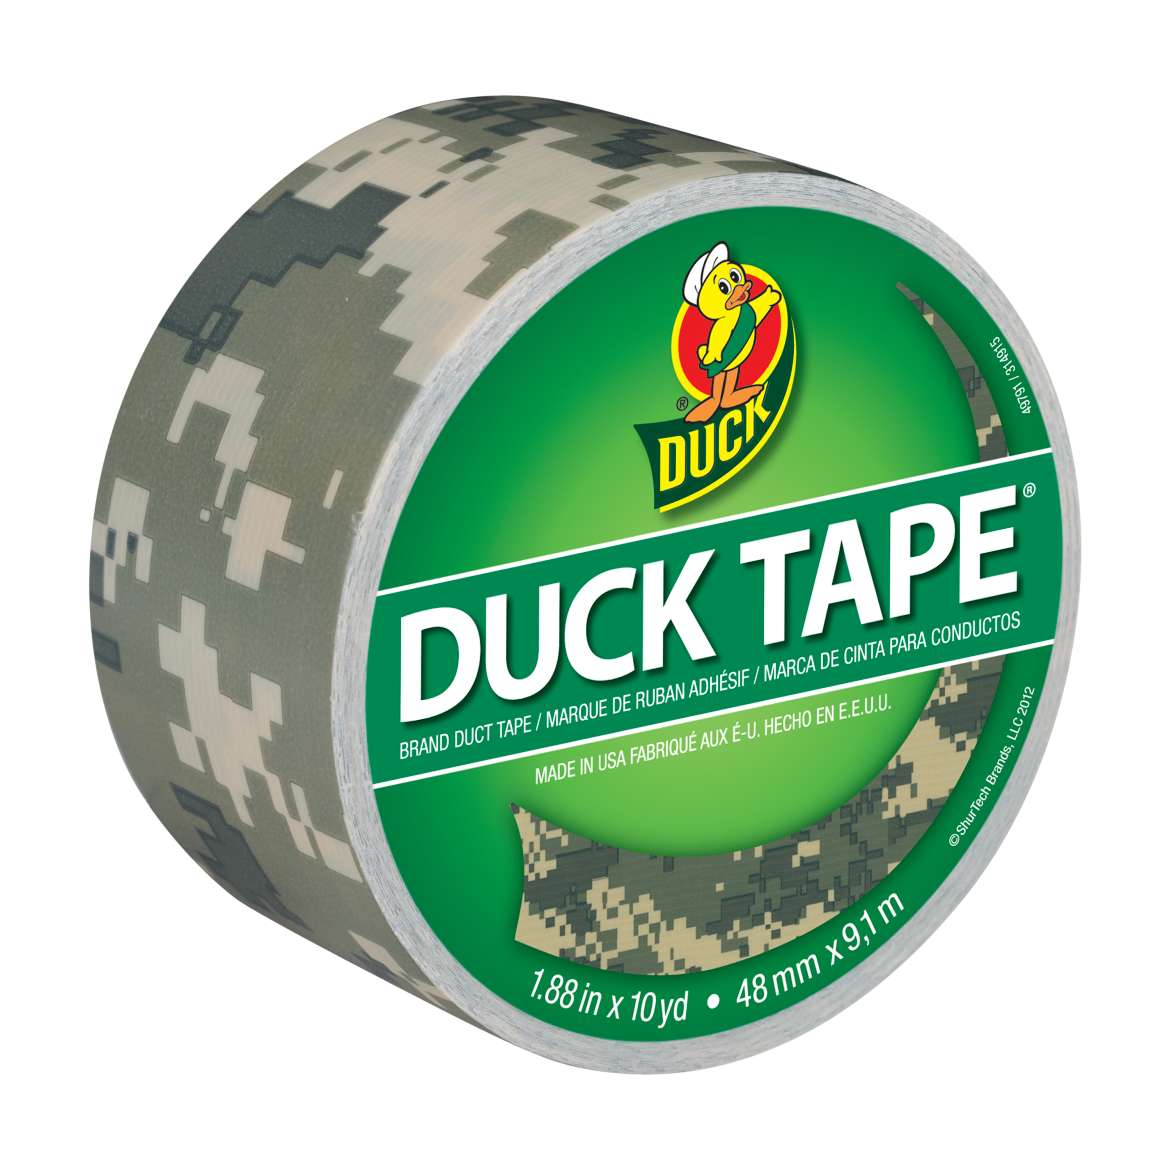 Duck Brand Duct Tape, 1.88 in. x 10 yds., Digital Camouflage